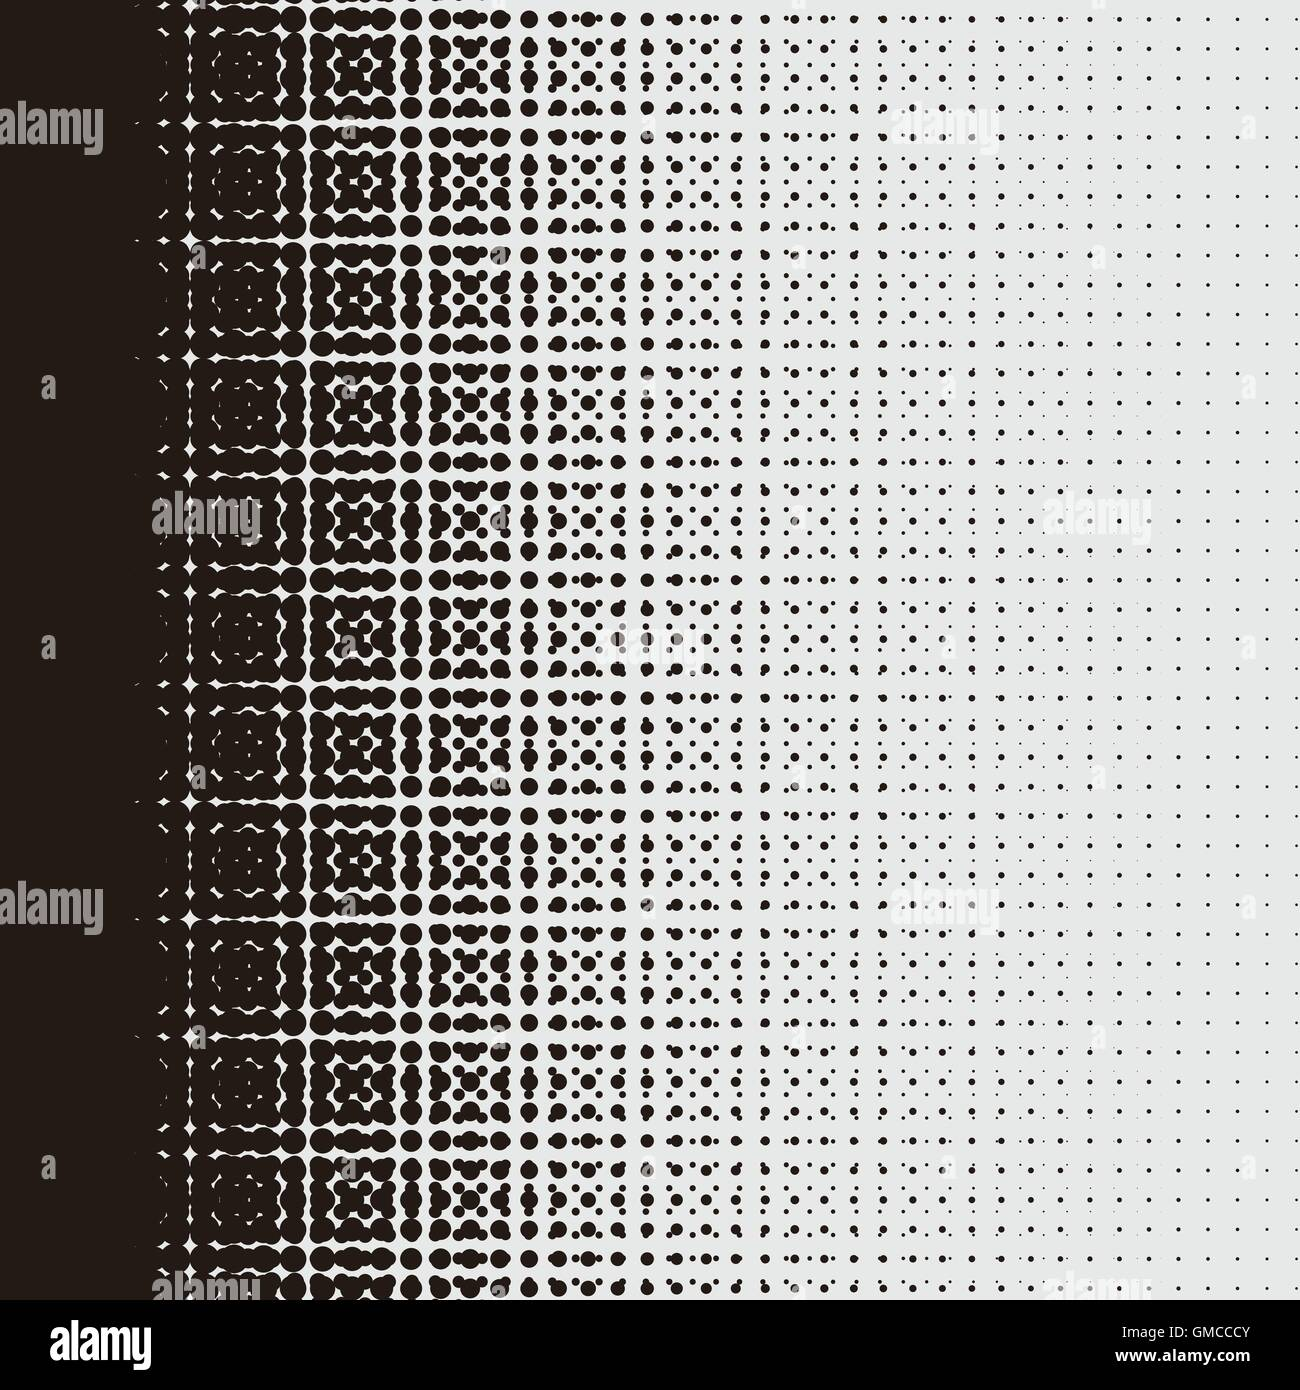 Simplicity dotted pattern design in halftone style - Stock Image